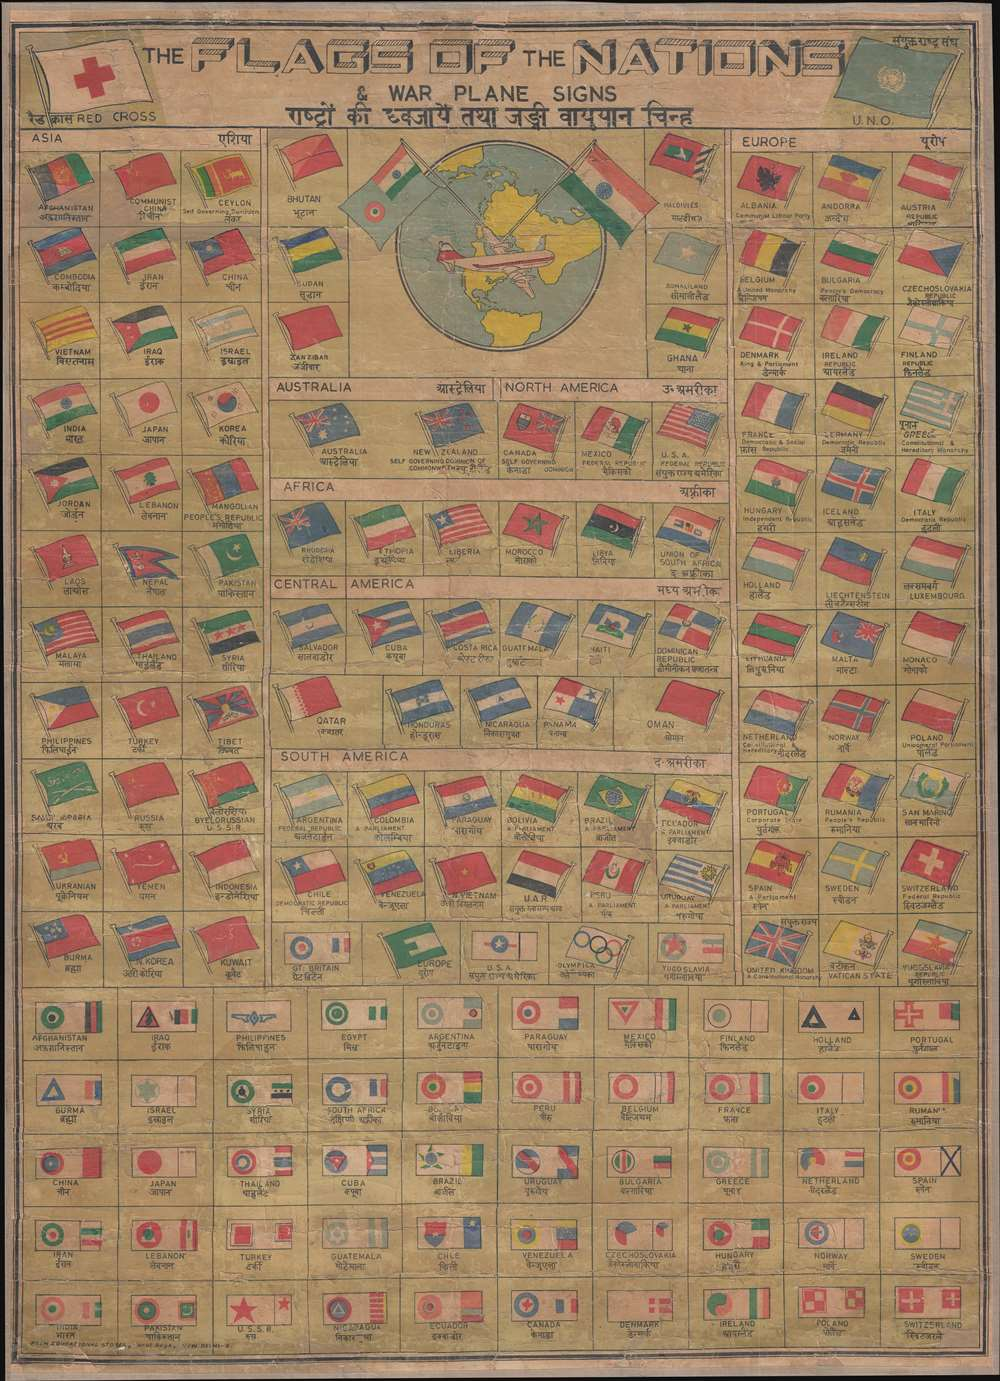 1962 Prem Educational Chart of the Flags and Aircraft Insignia of the World